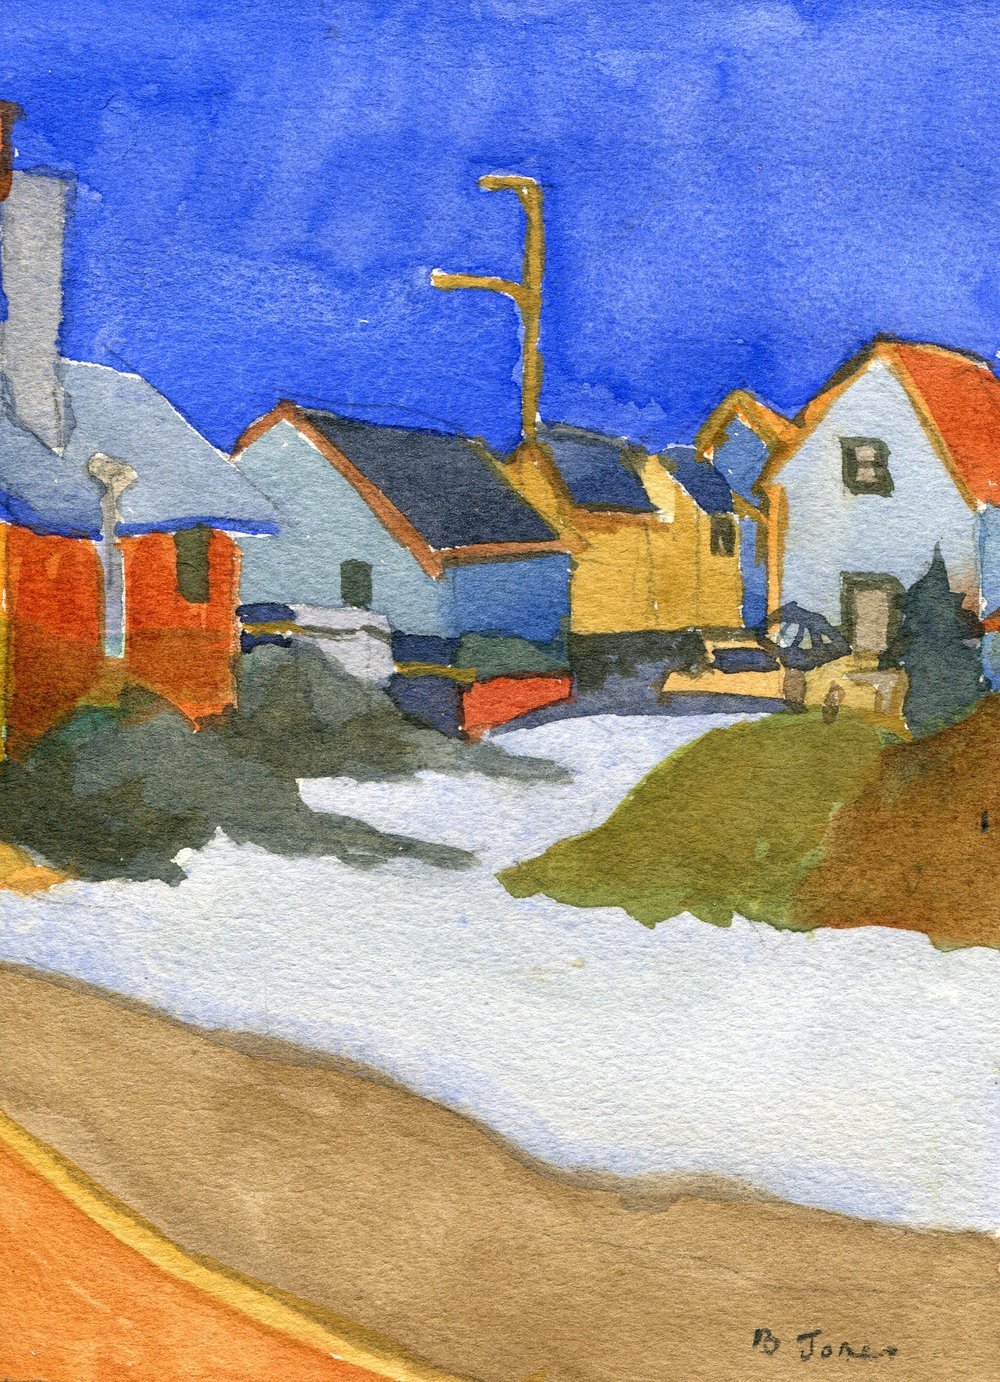 62c  Betty Jones  Village at Twilight  watercolour on paper